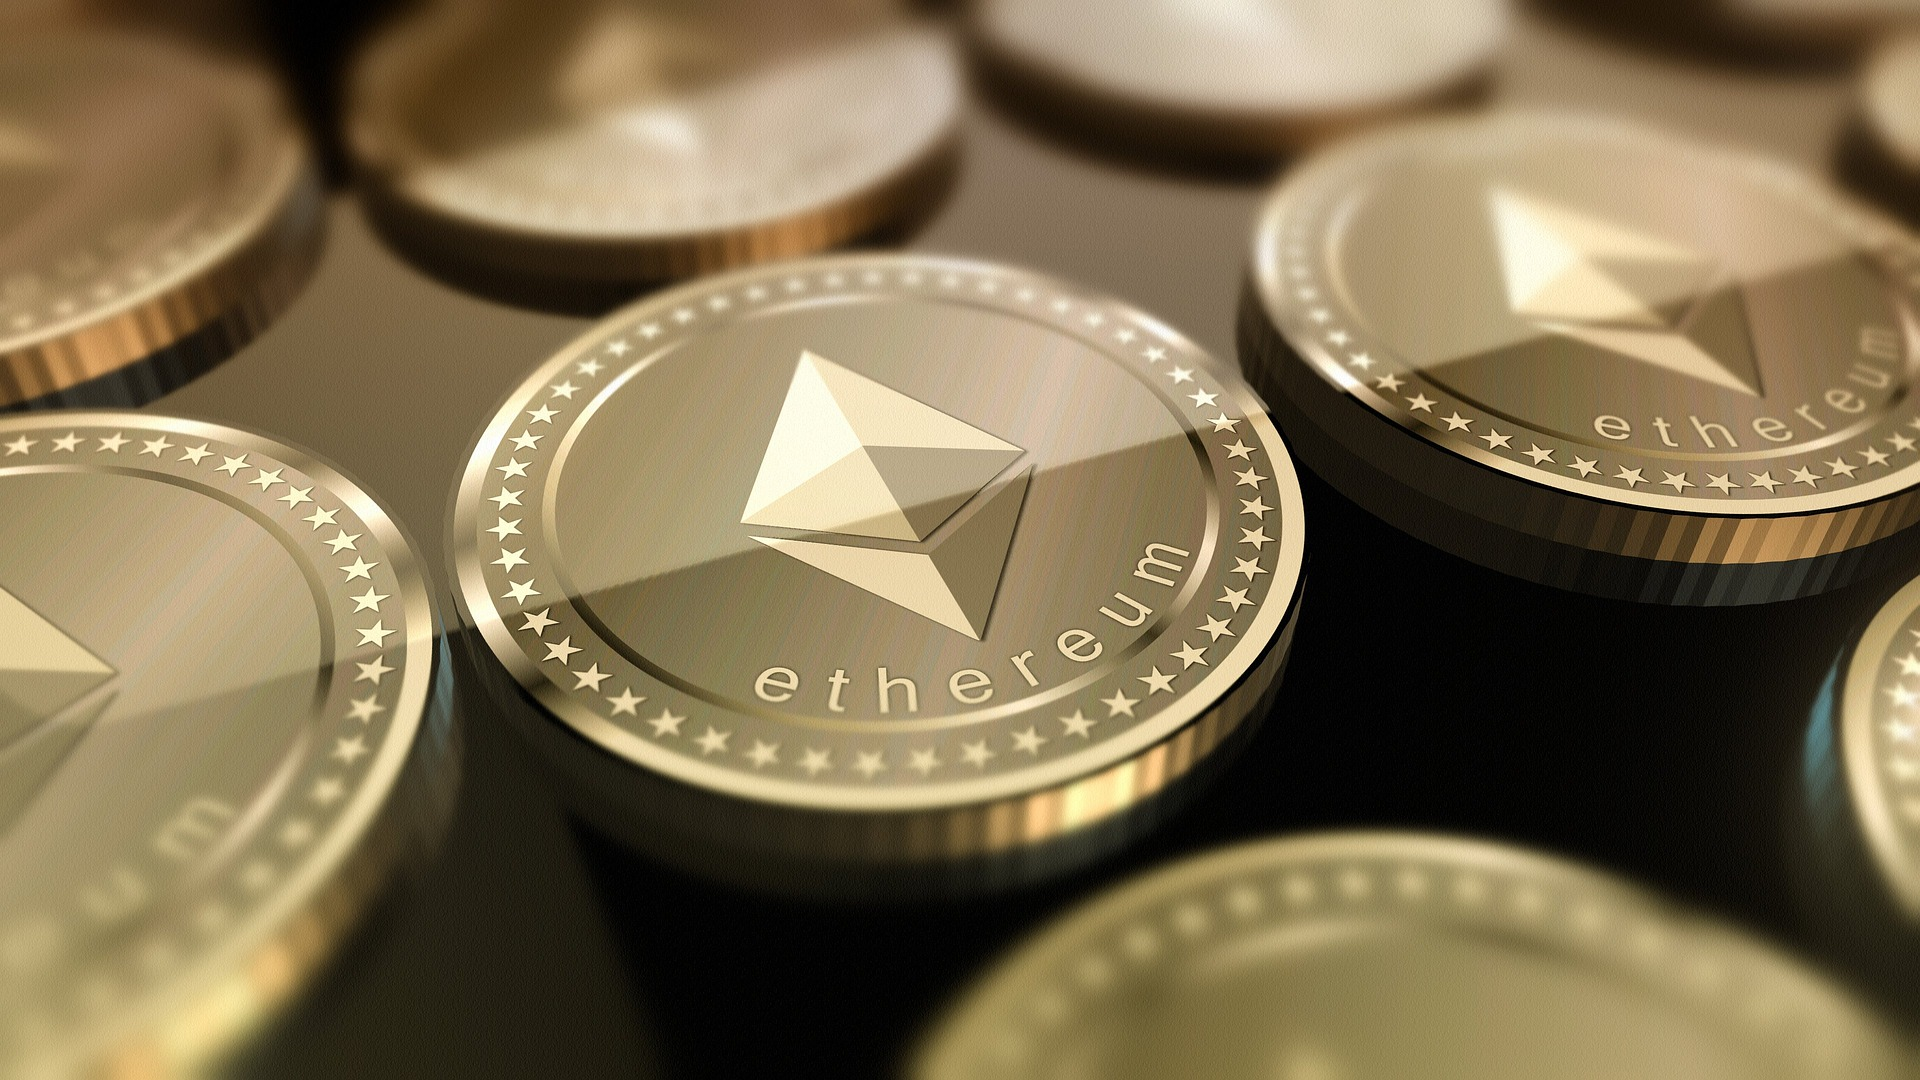 More than anything, this is what Ethereum needs for a good June